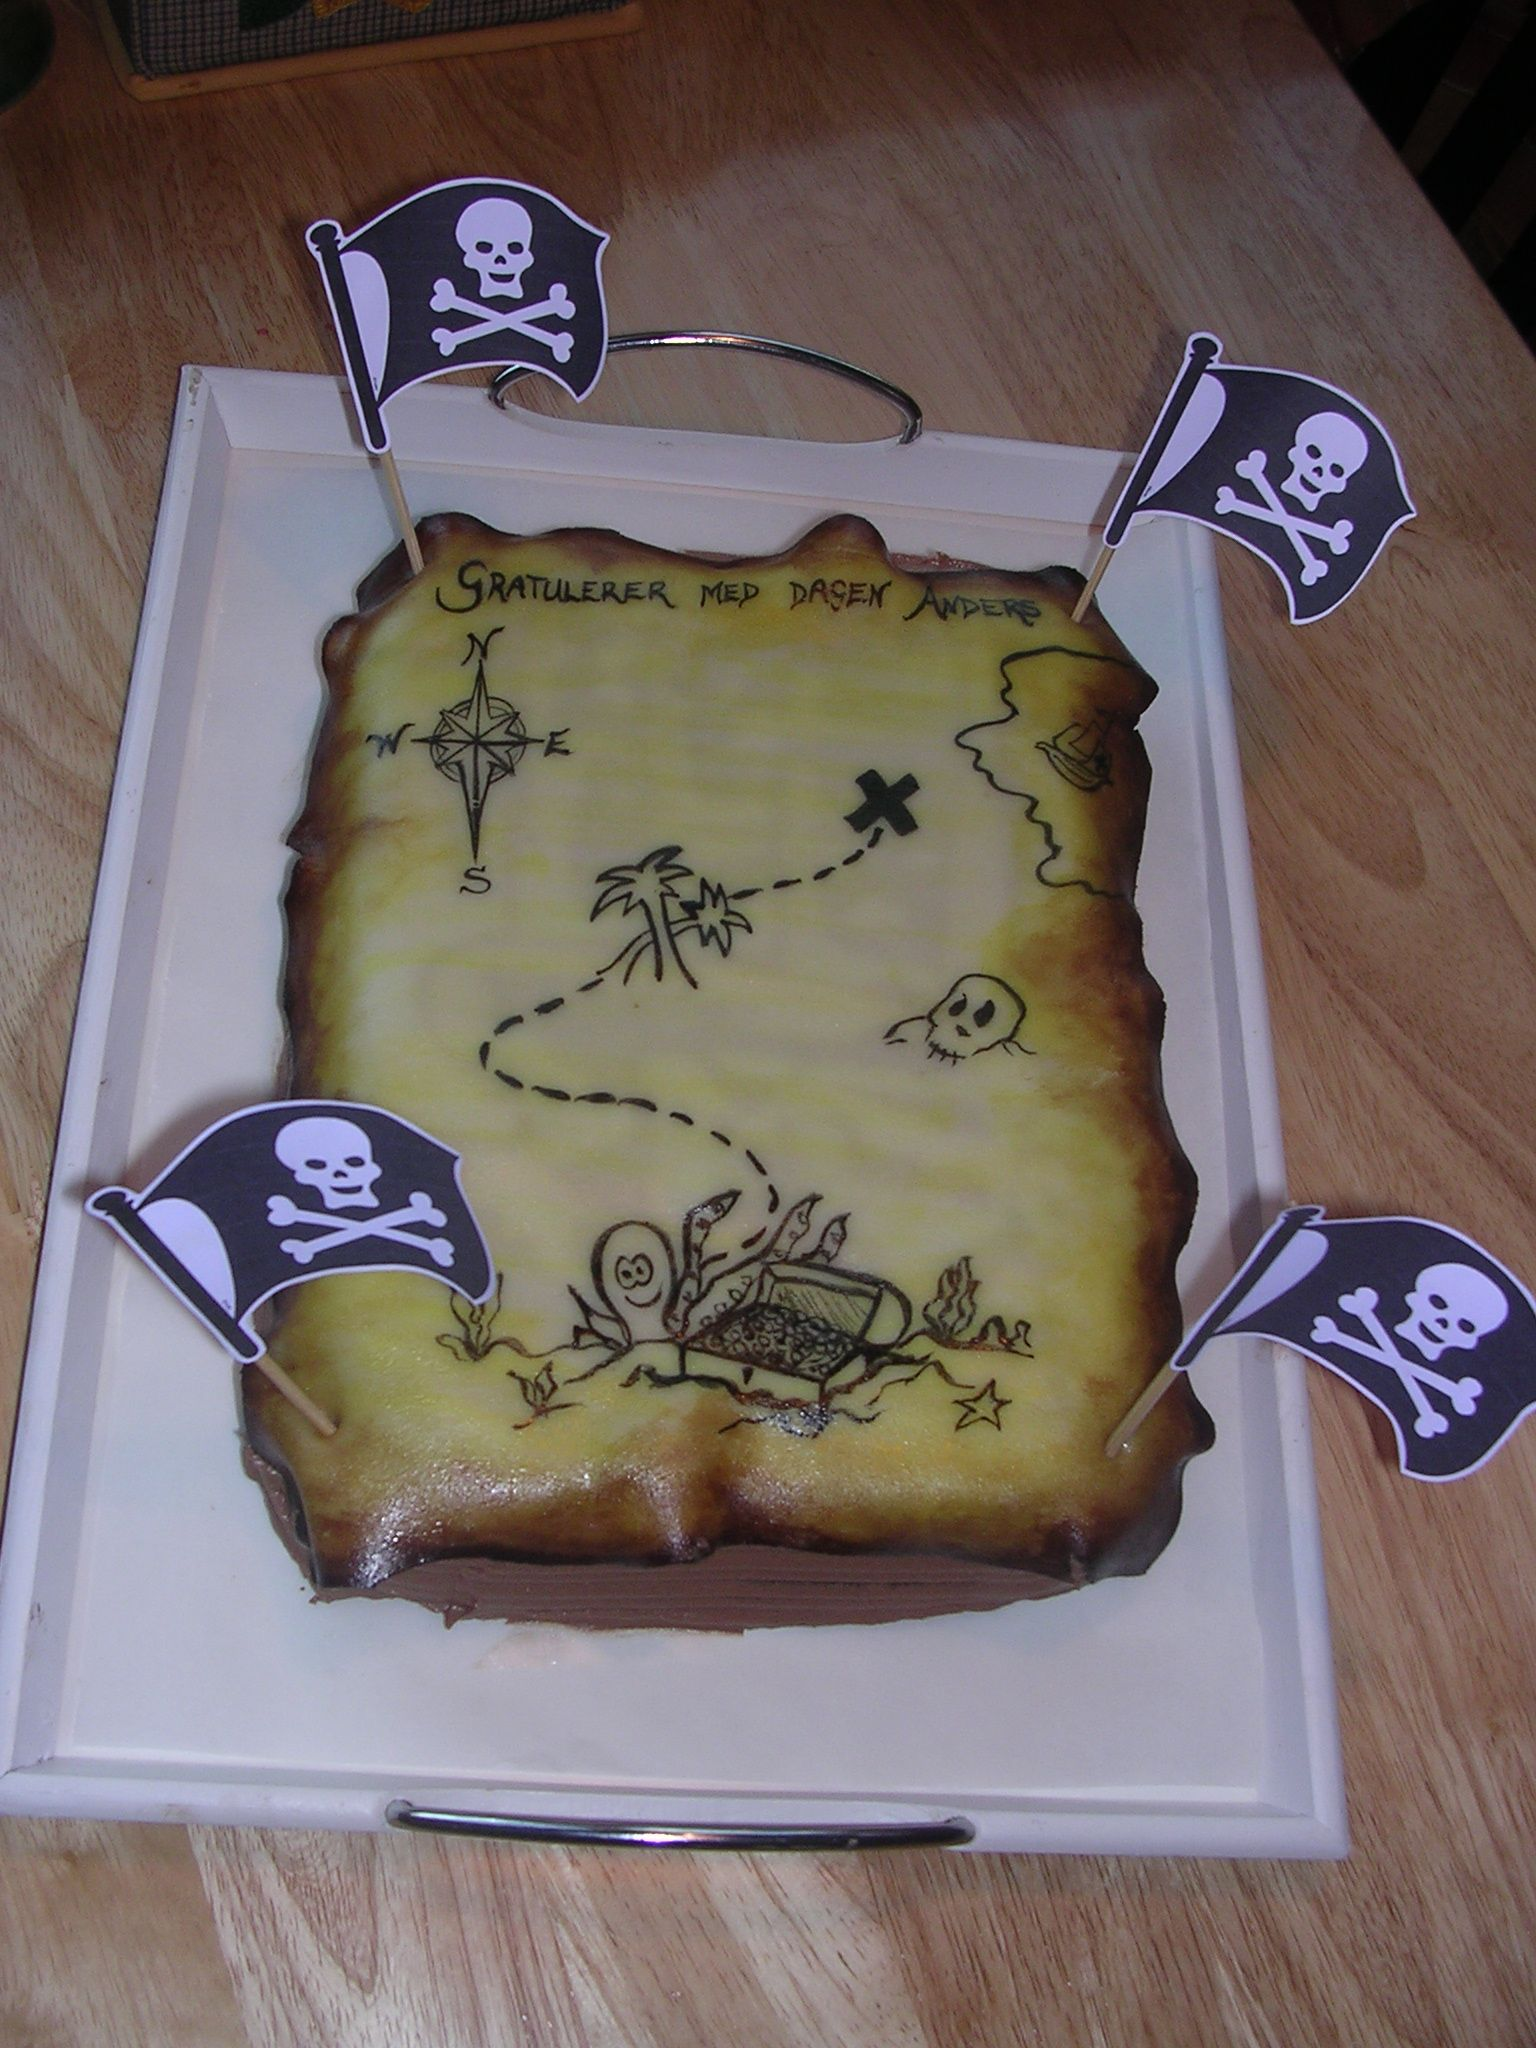 Treasure Map Cake I Used A Sheet Of Marzipan And Painted